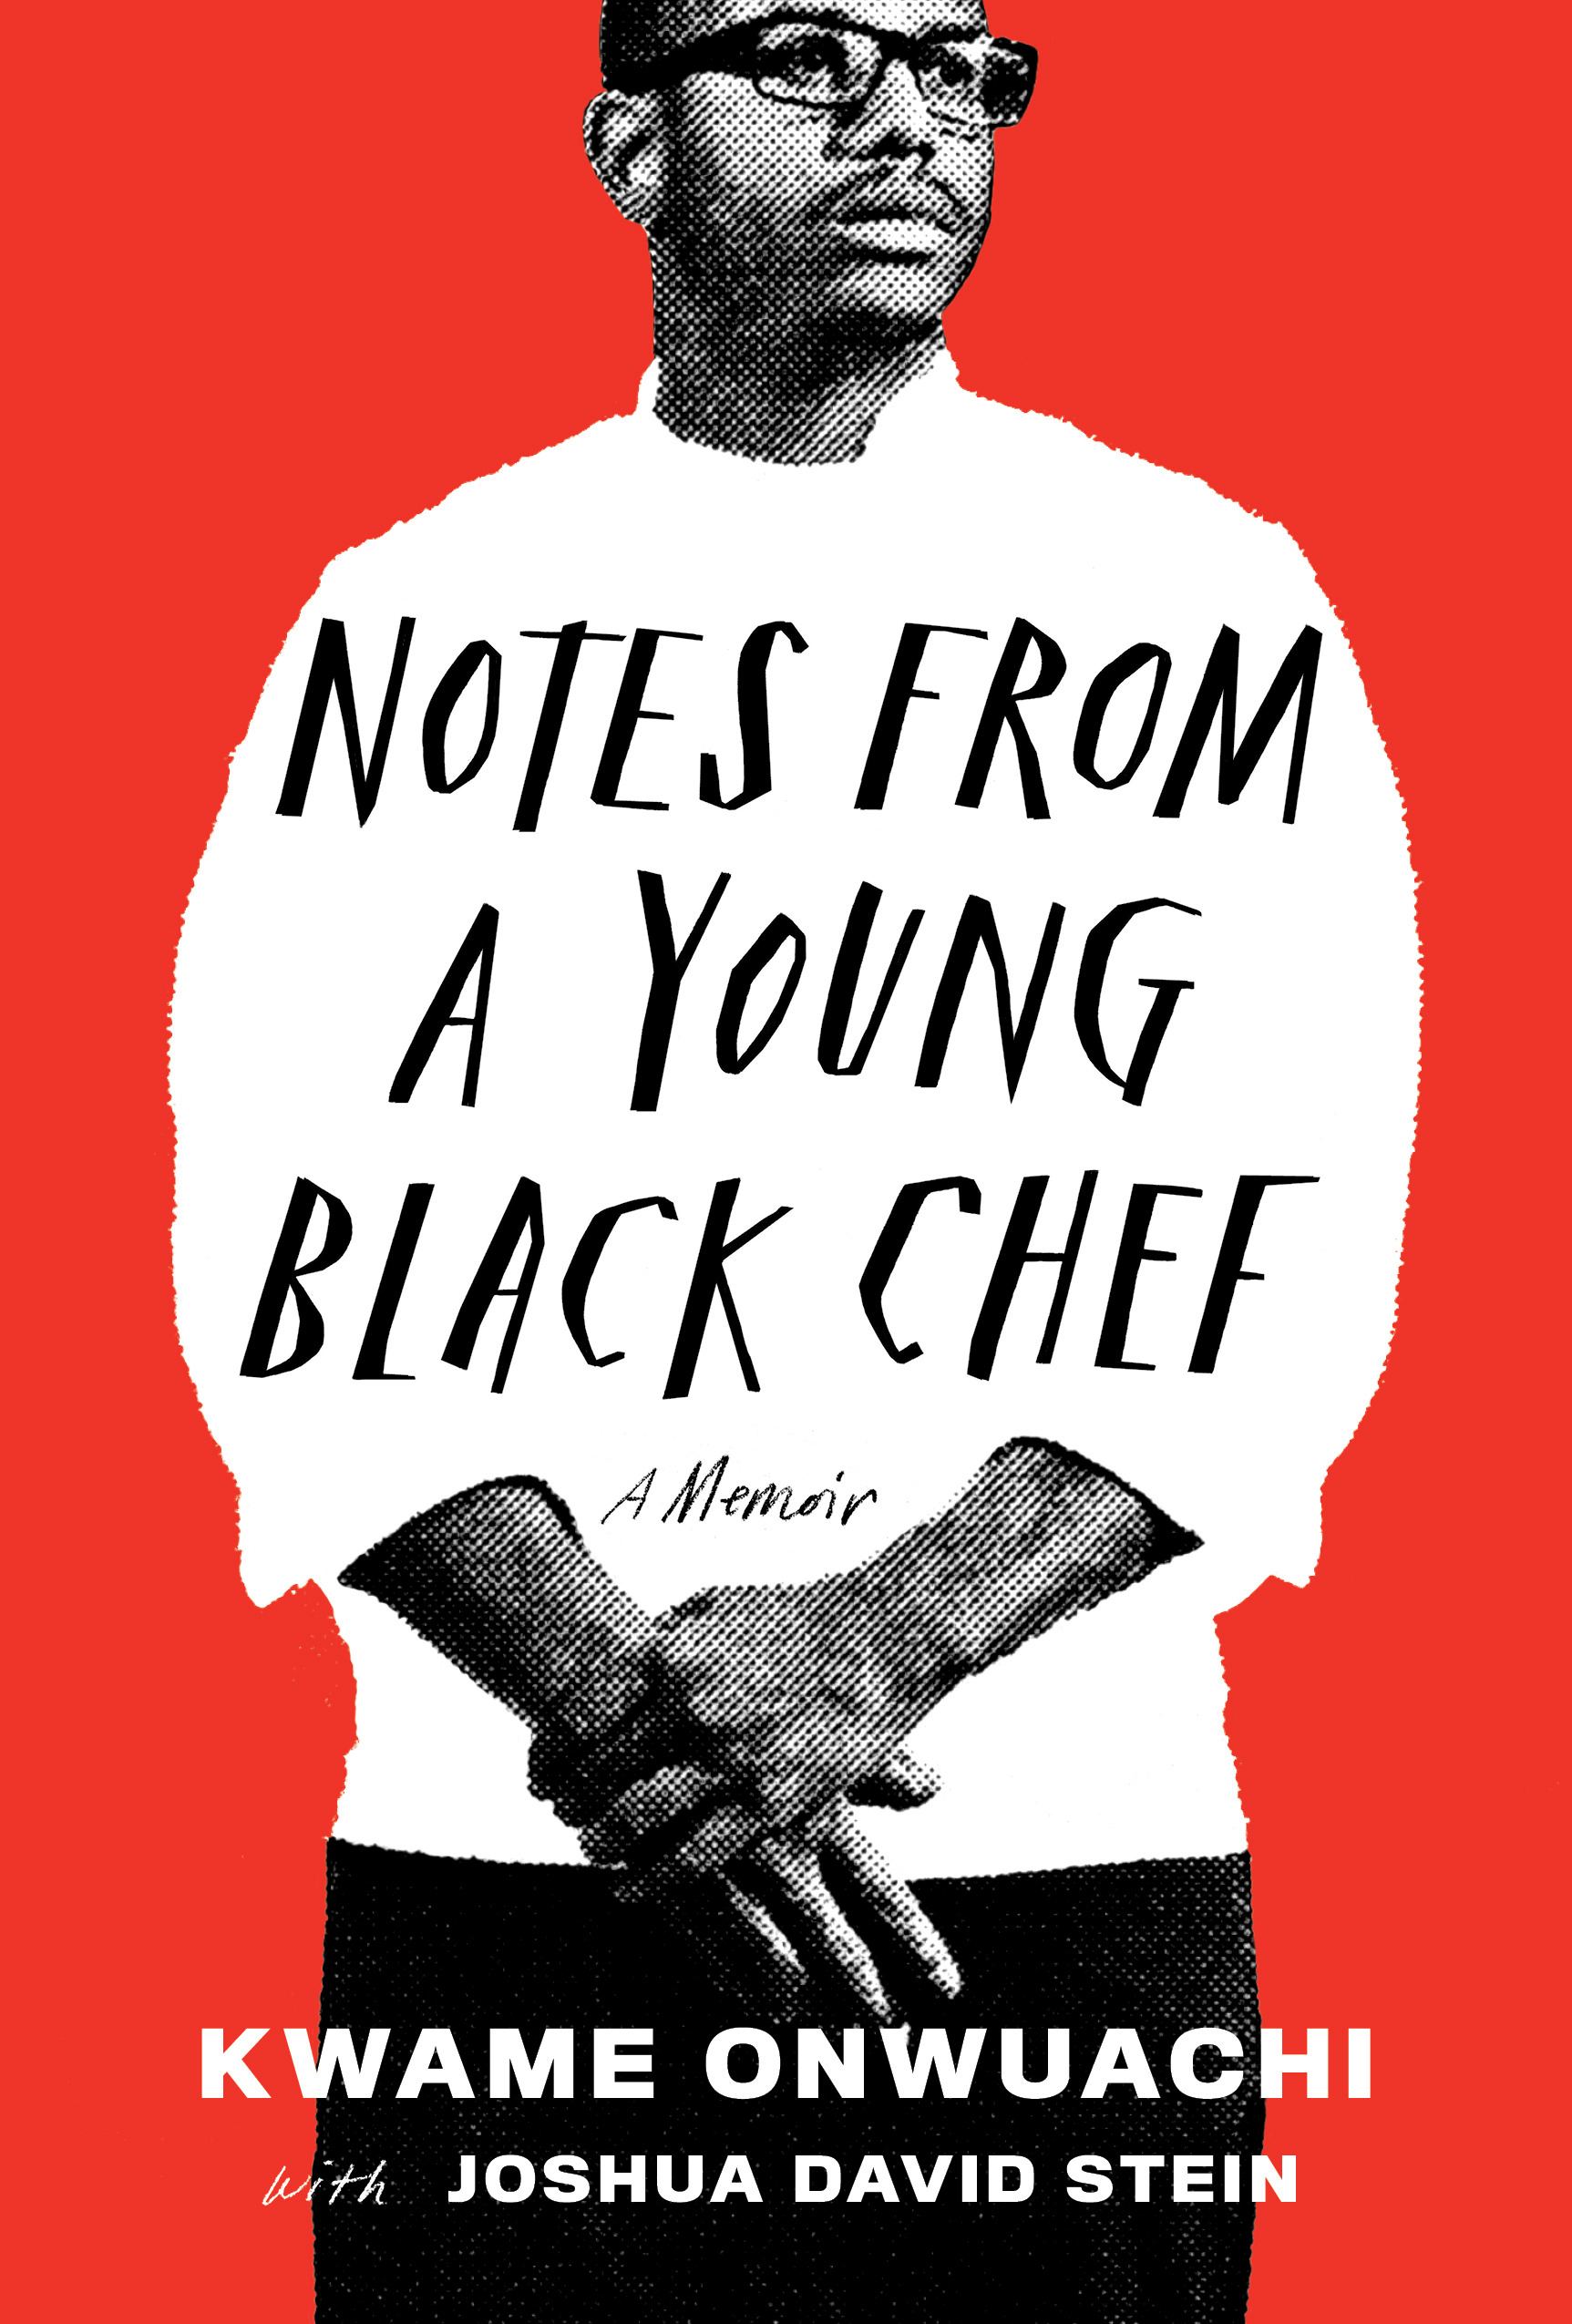 """Notes from a Young Black Chef"" by Kwame Onwuachi{&nbsp;}(Image: Courtesy Knopf)<p></p>"